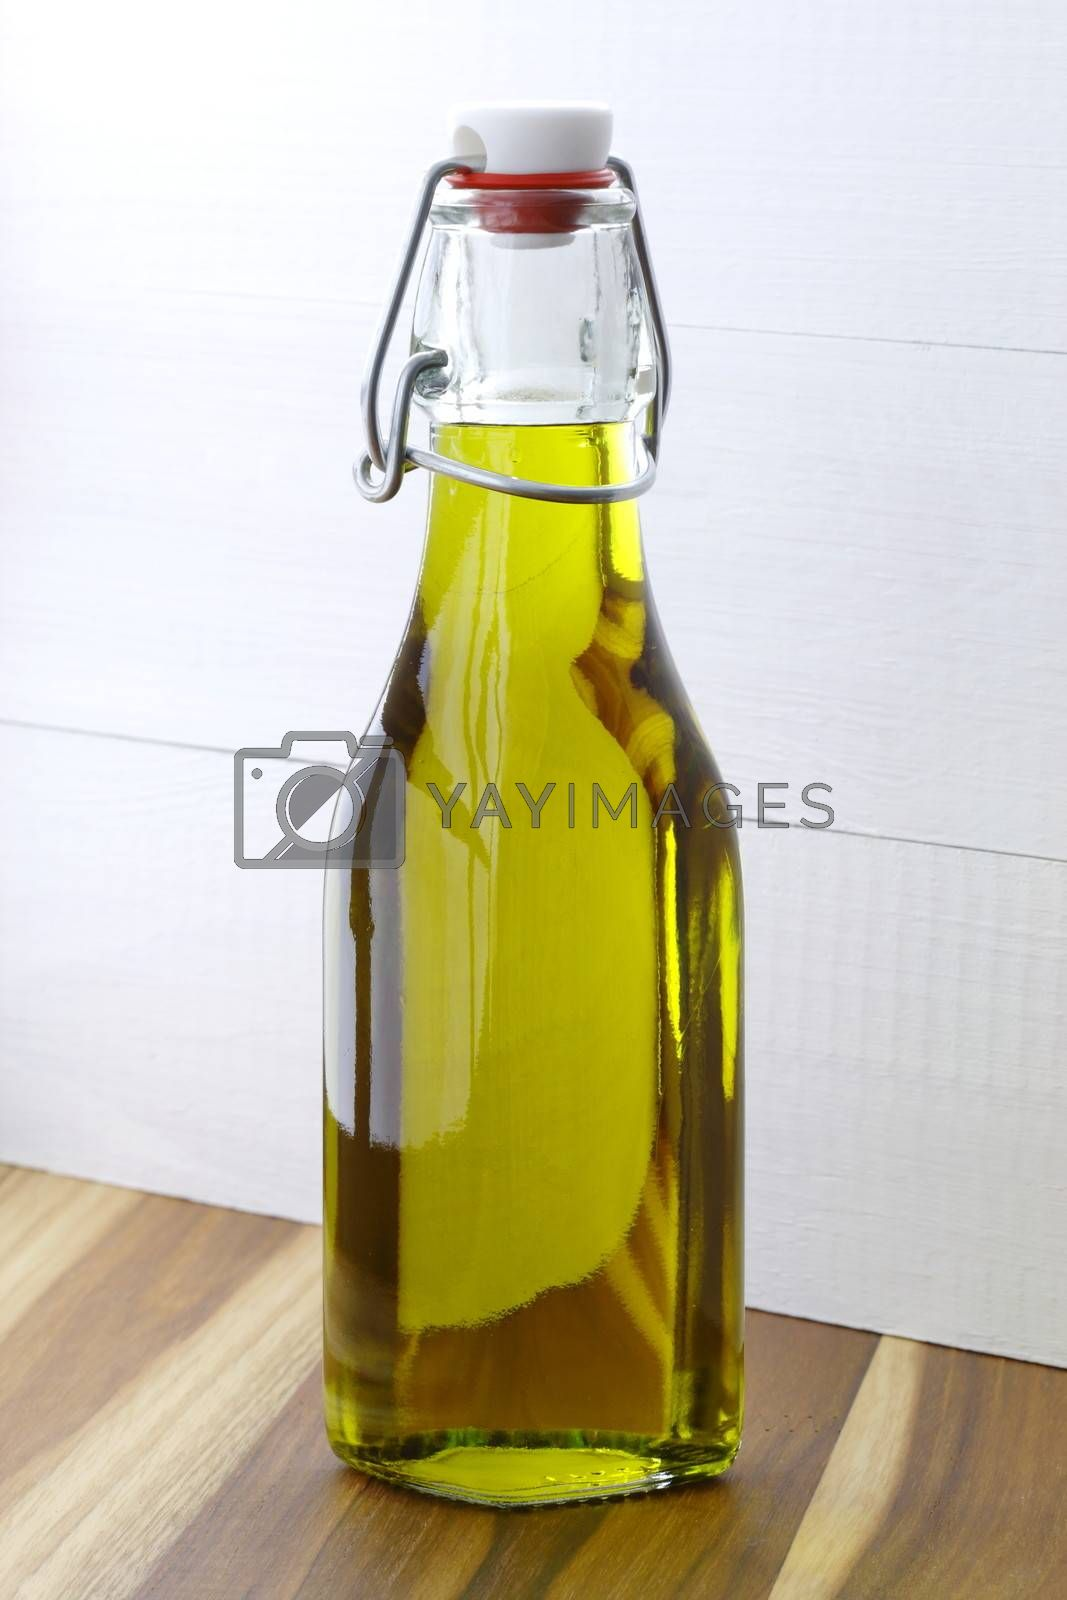 Delicious olive oil made from fresh cold pressed olives, one of the most used oils in fine cooking.